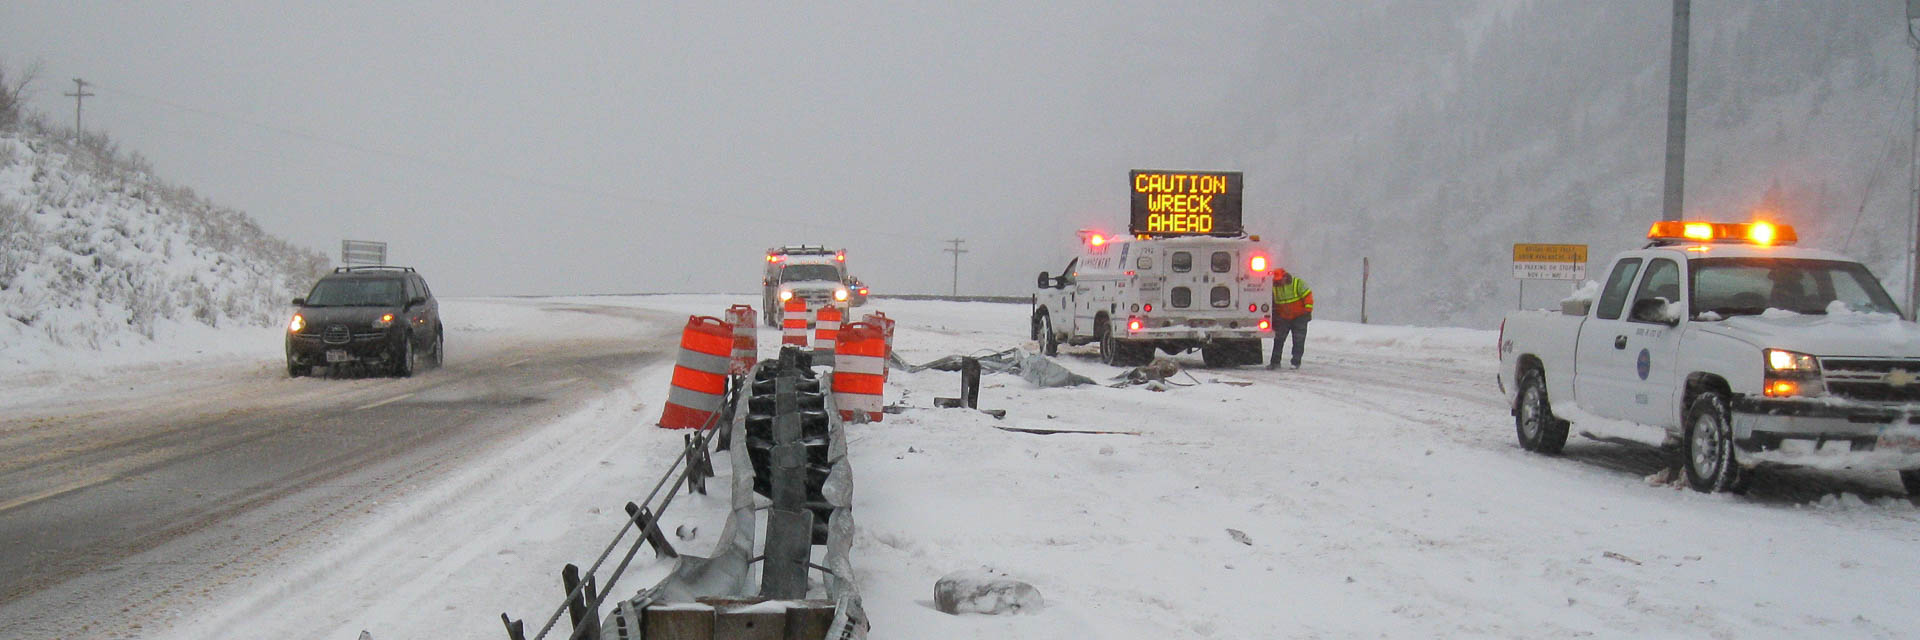 First responders clear winter weather traffic accident